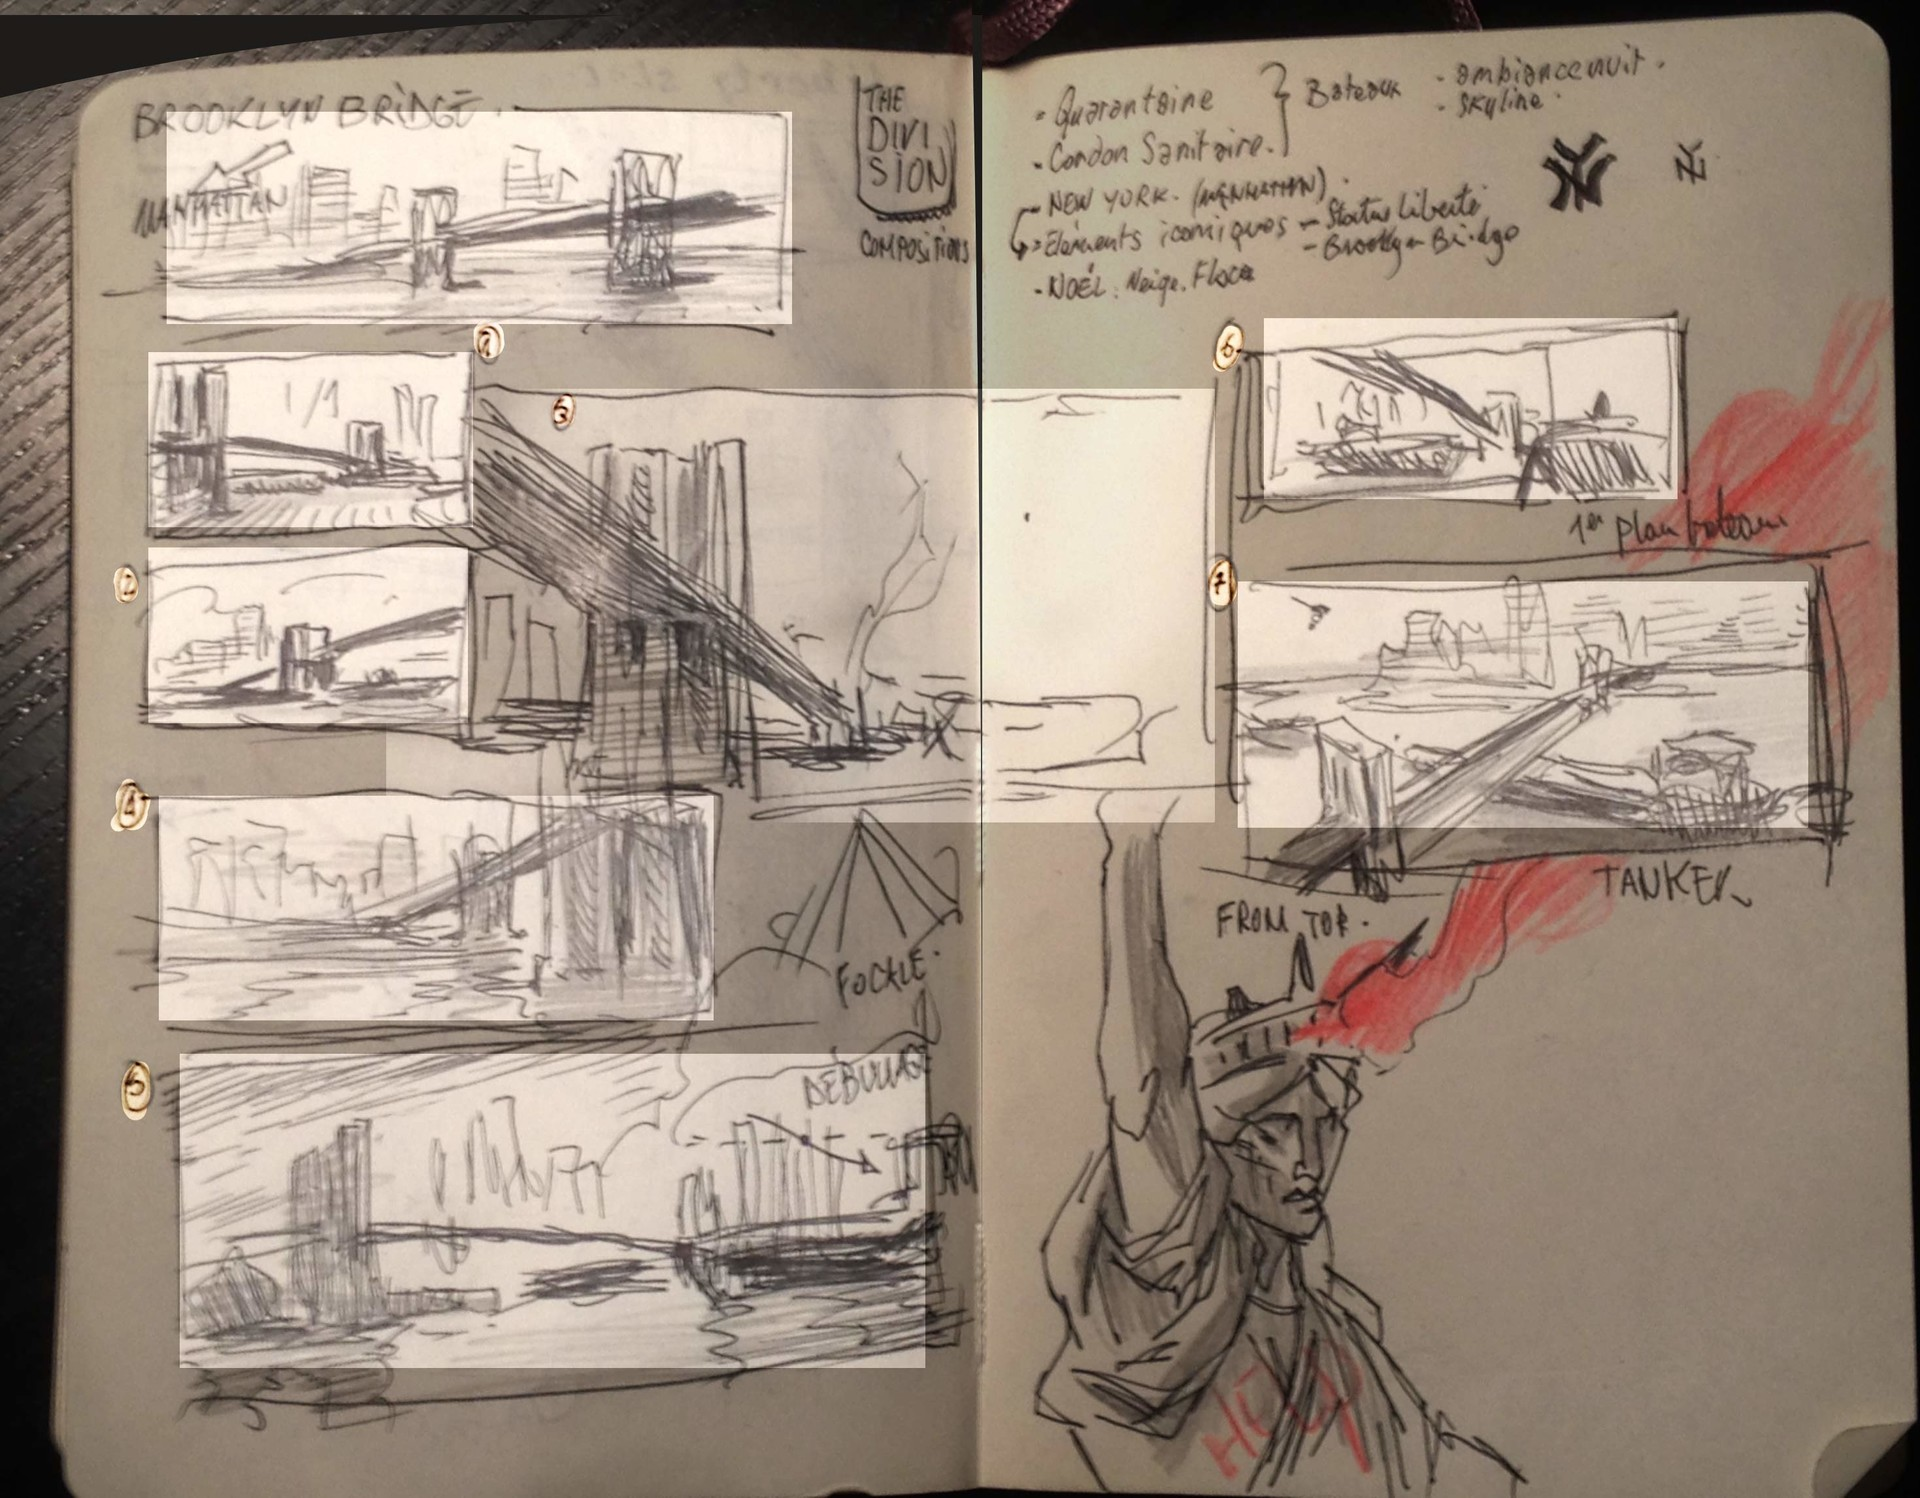 Aleksi briclot ubisoft thedivision composketch brooklynbridge sketches01